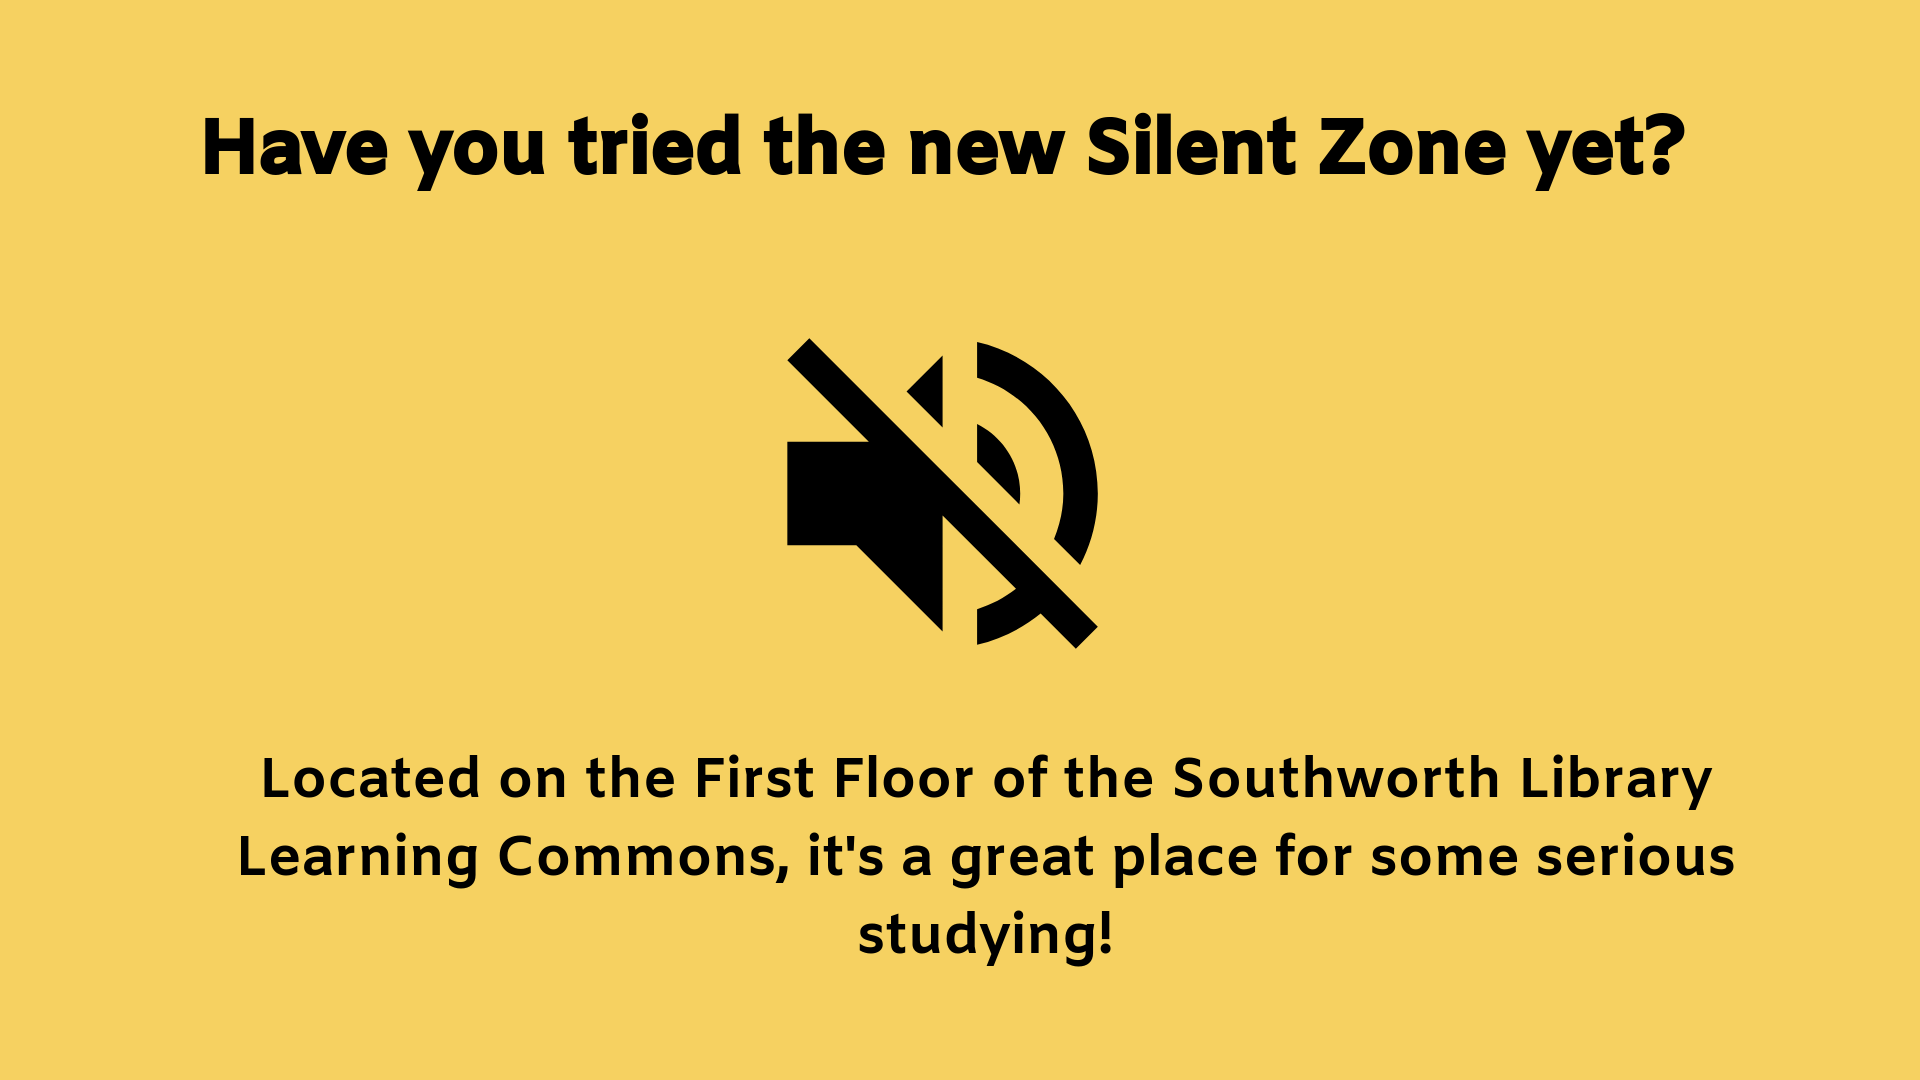 Have you tried the new Silent Zone yet? Located on the First Floor of the Southworth Library Learning Commons, it's a great place for some serious studying!